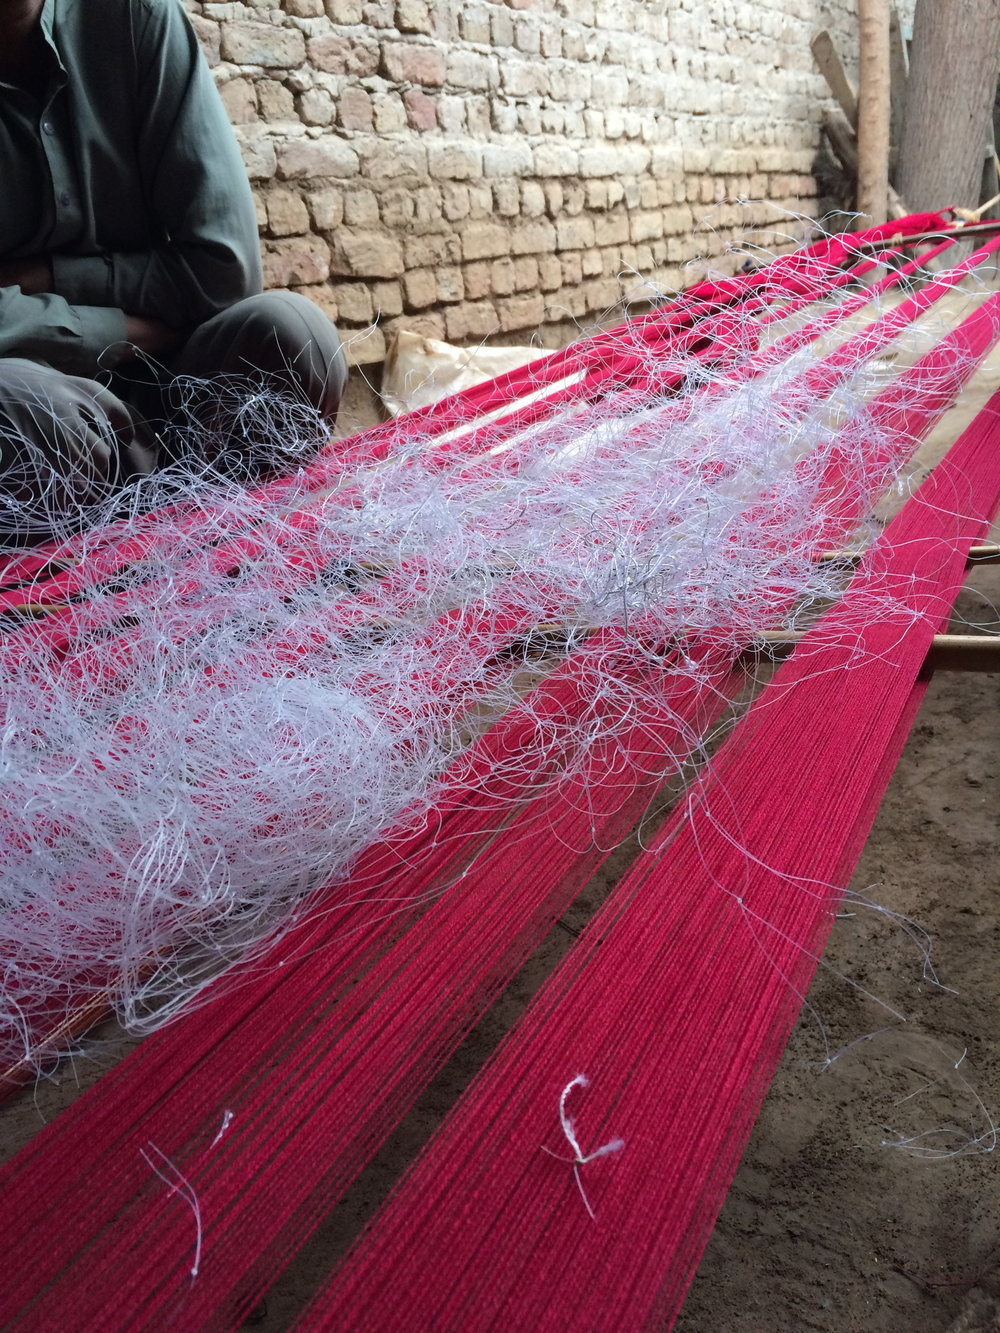 AMB village: discussing how to use ghost nets in weave